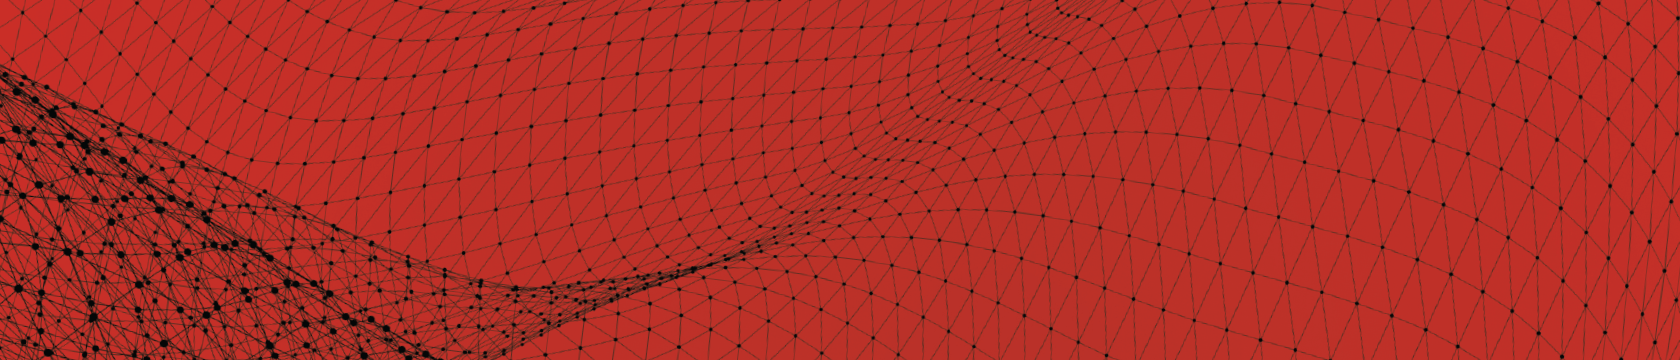 red image with black netting